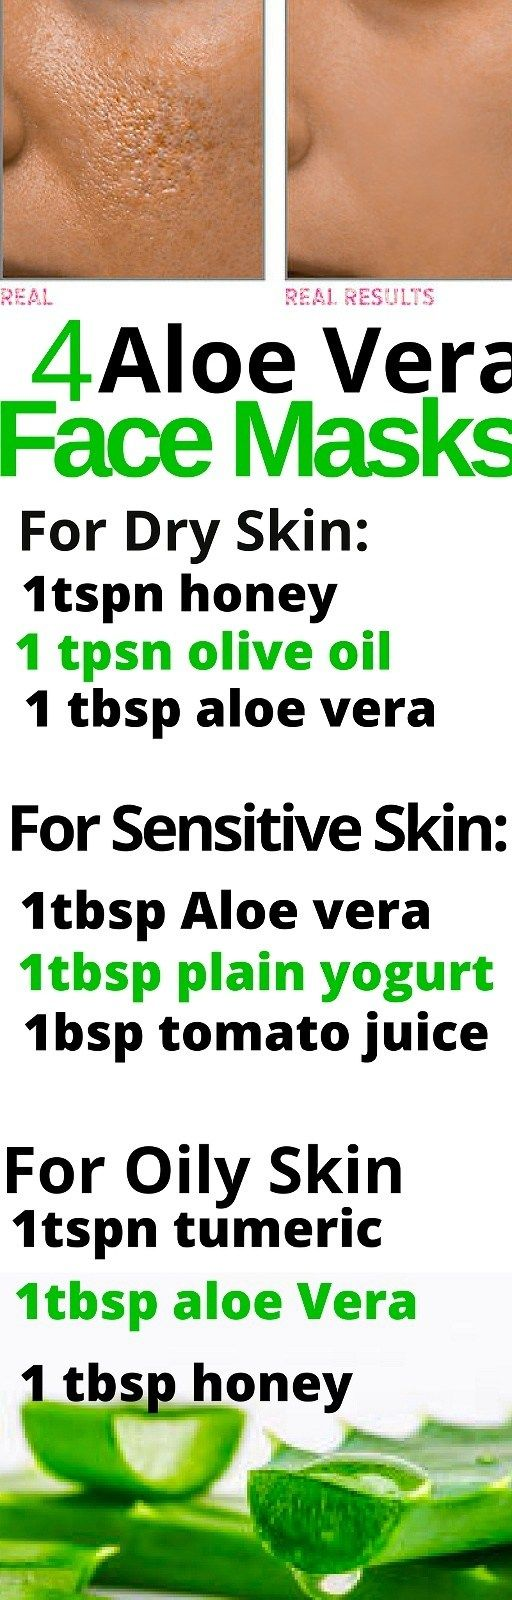 4 Aloe Vera Face mask for All skin type.These 4 Aloe Vera Face mask are simple way to get the most out of your skincare routine. Aloe Vera is one of the best things you can use, to treat various skin conditions such as acne, eczema, age spots and stretch marks. Its a natural antibiotic, packed with tons of mineral and nutrients that's good for skin. This makes this amazing super plant a must, for beautiful healthy skin.